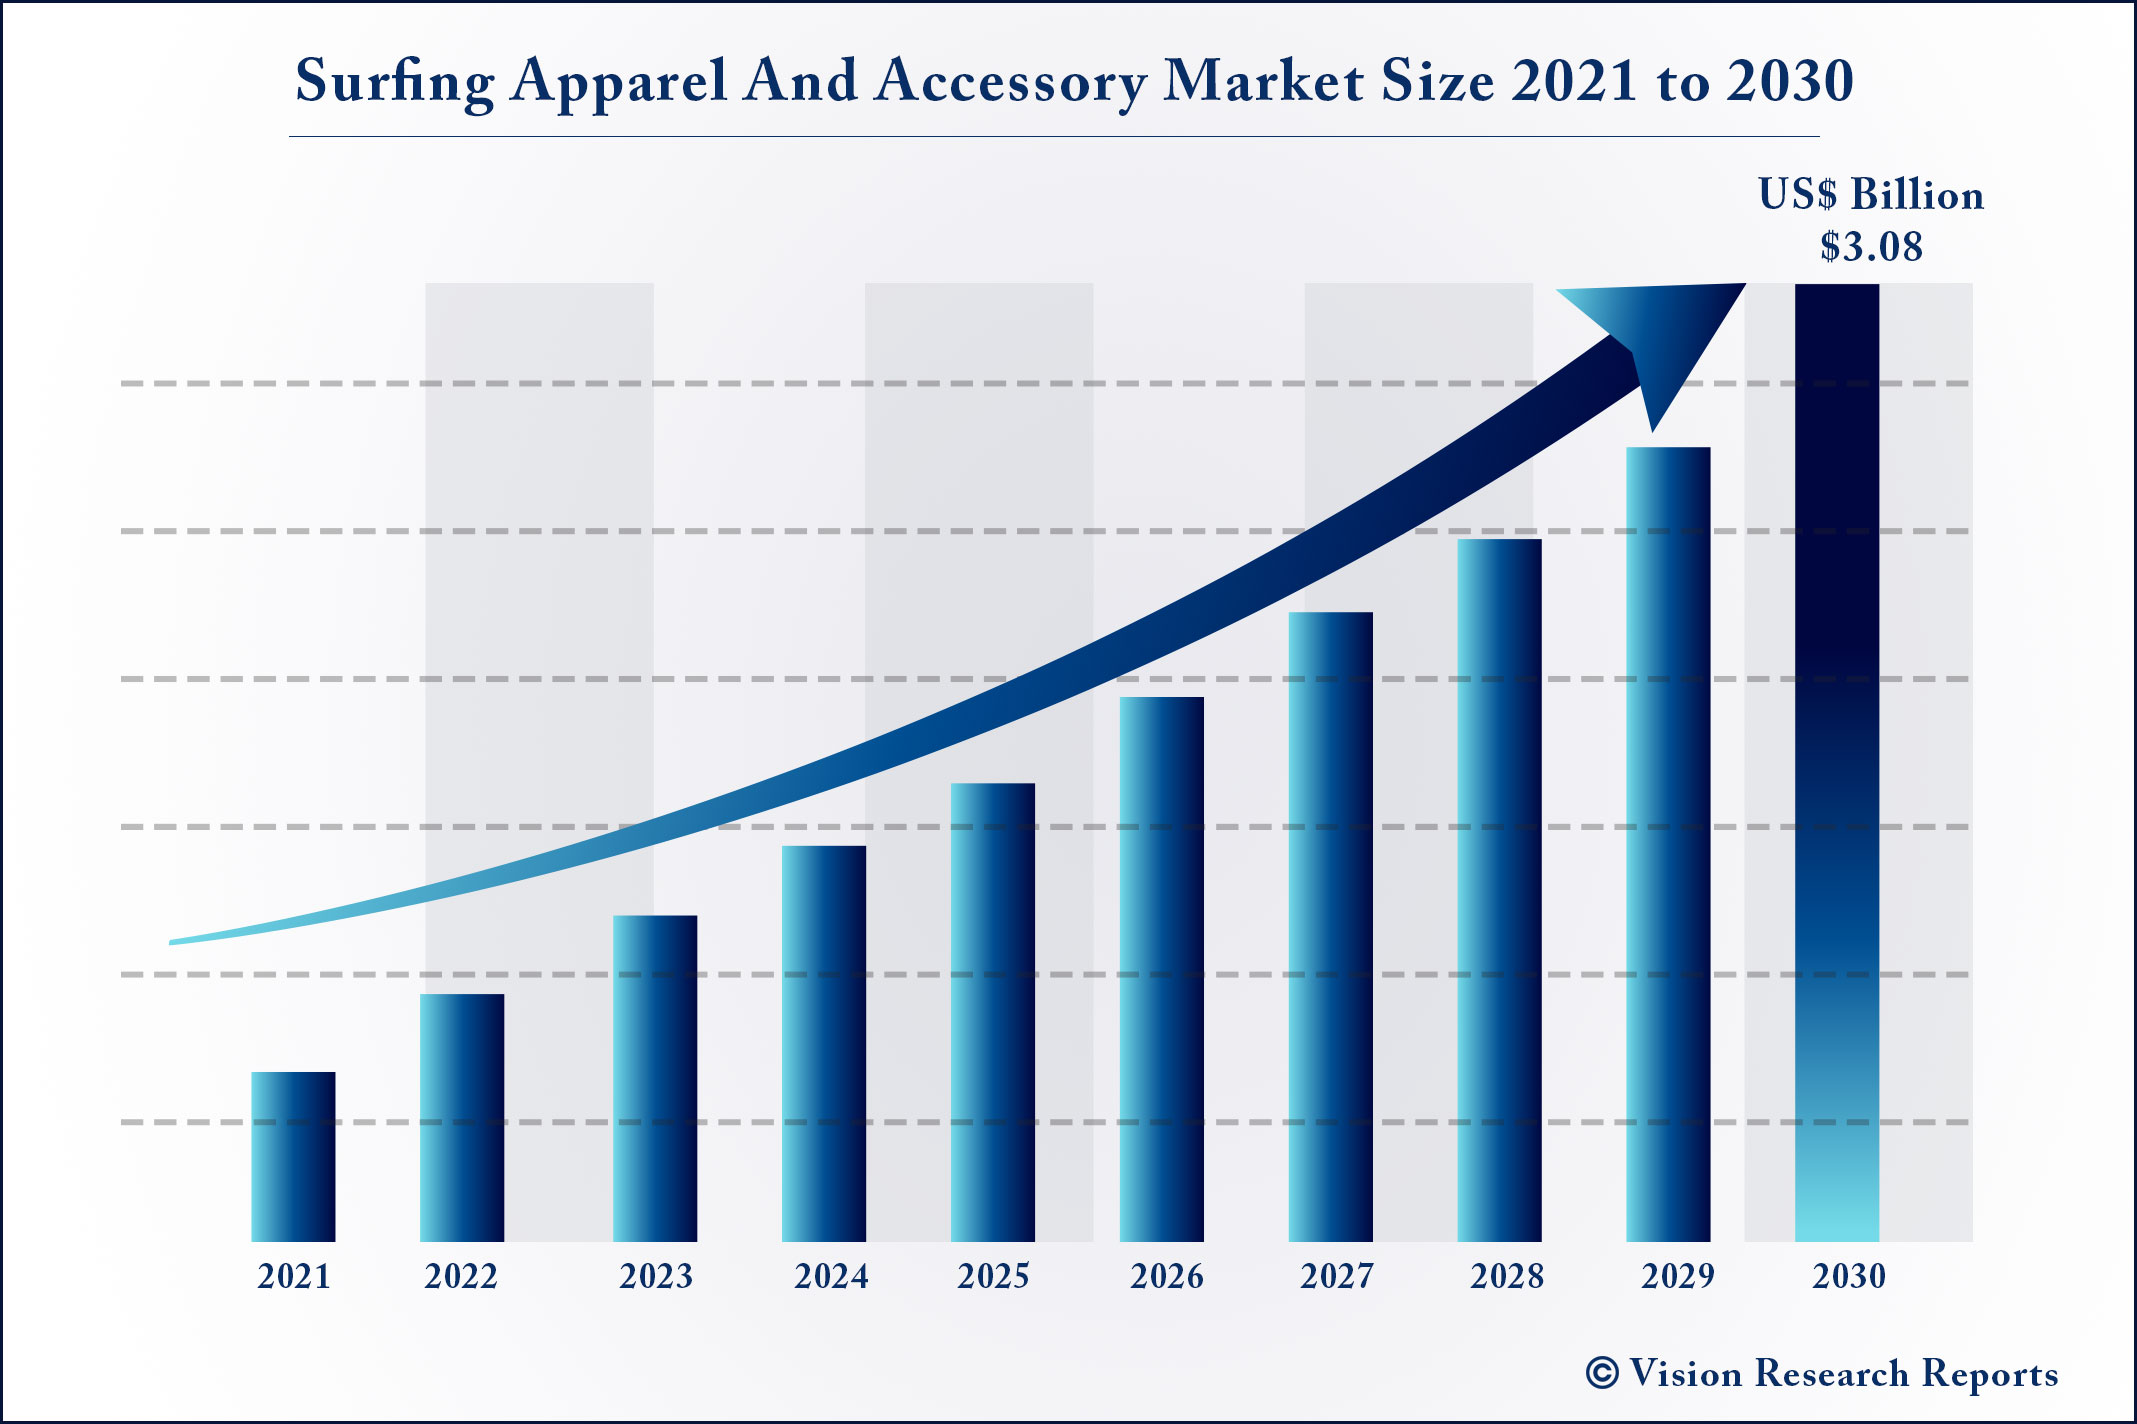 Surfing Apparel And Accessory Market Size 2021 to 2030